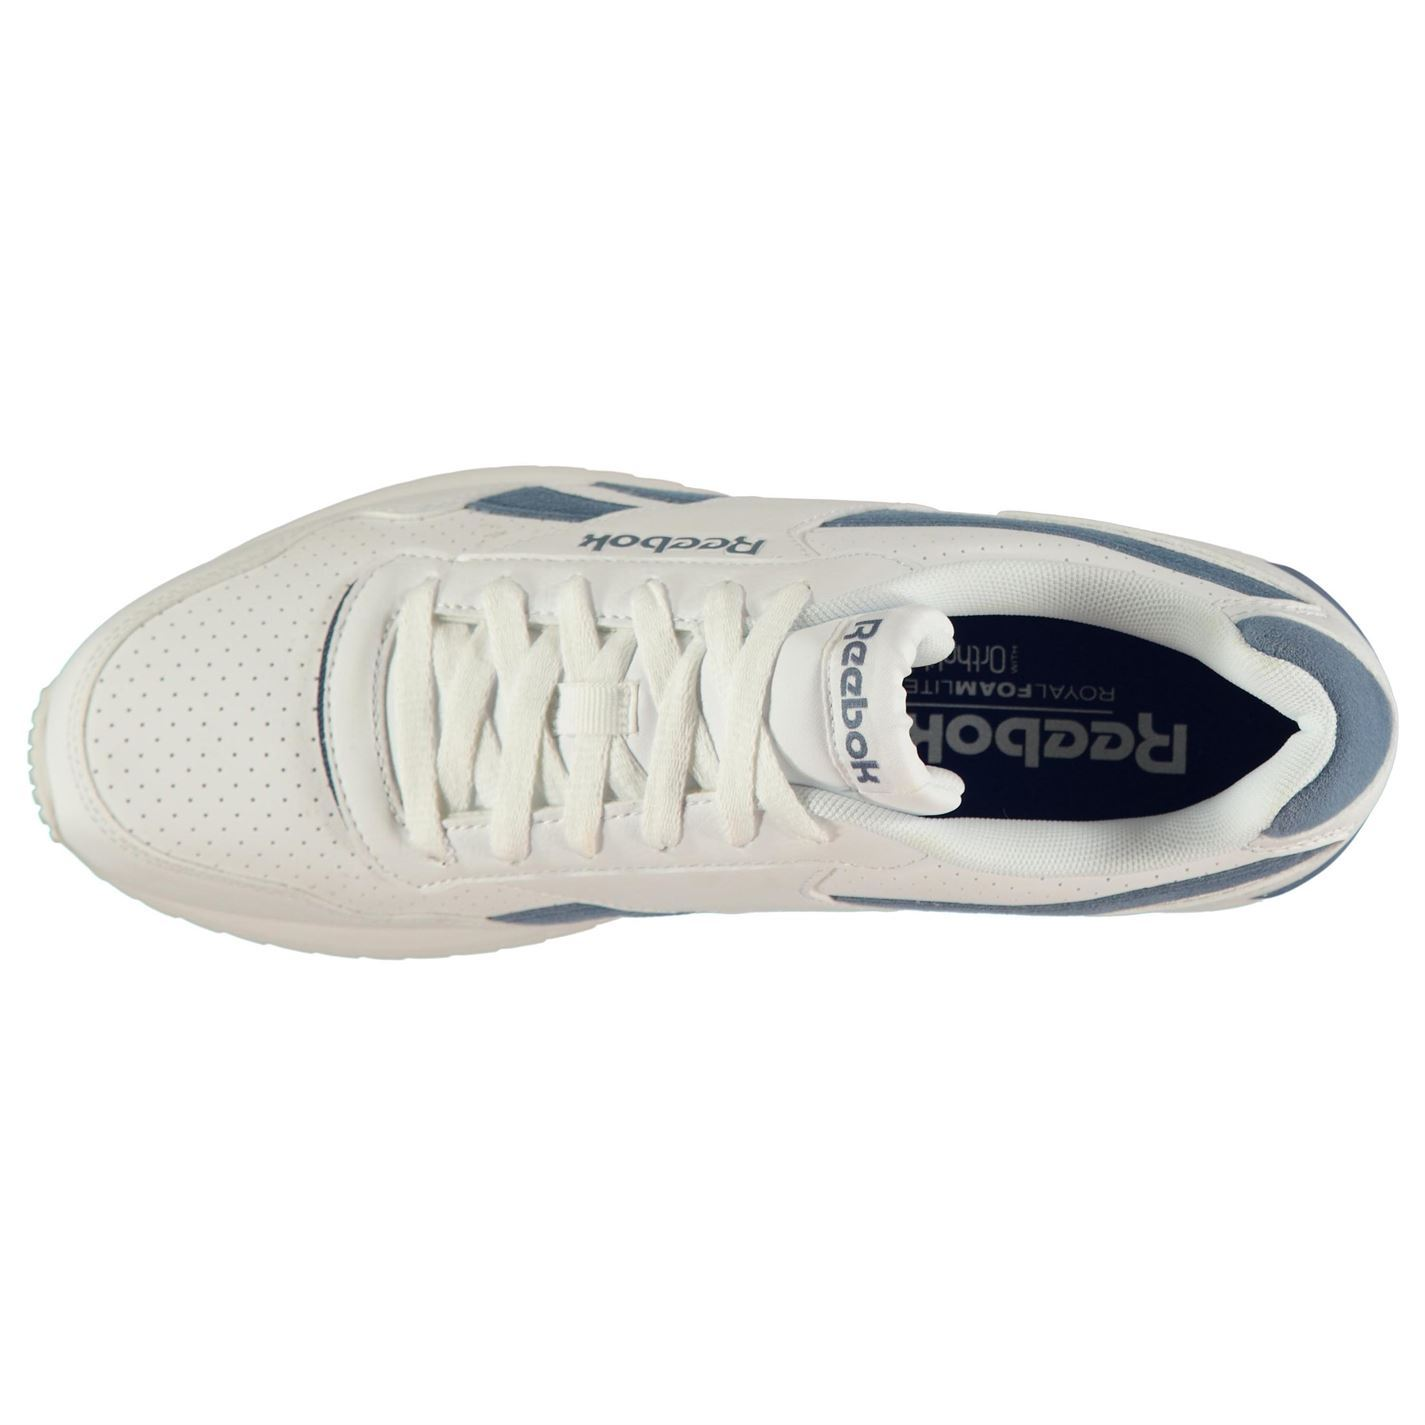 b4b19fa99ed Reebok Royal Glide Ripple Clip Trainers Mens White Blue Sports Shoes  Sneakers